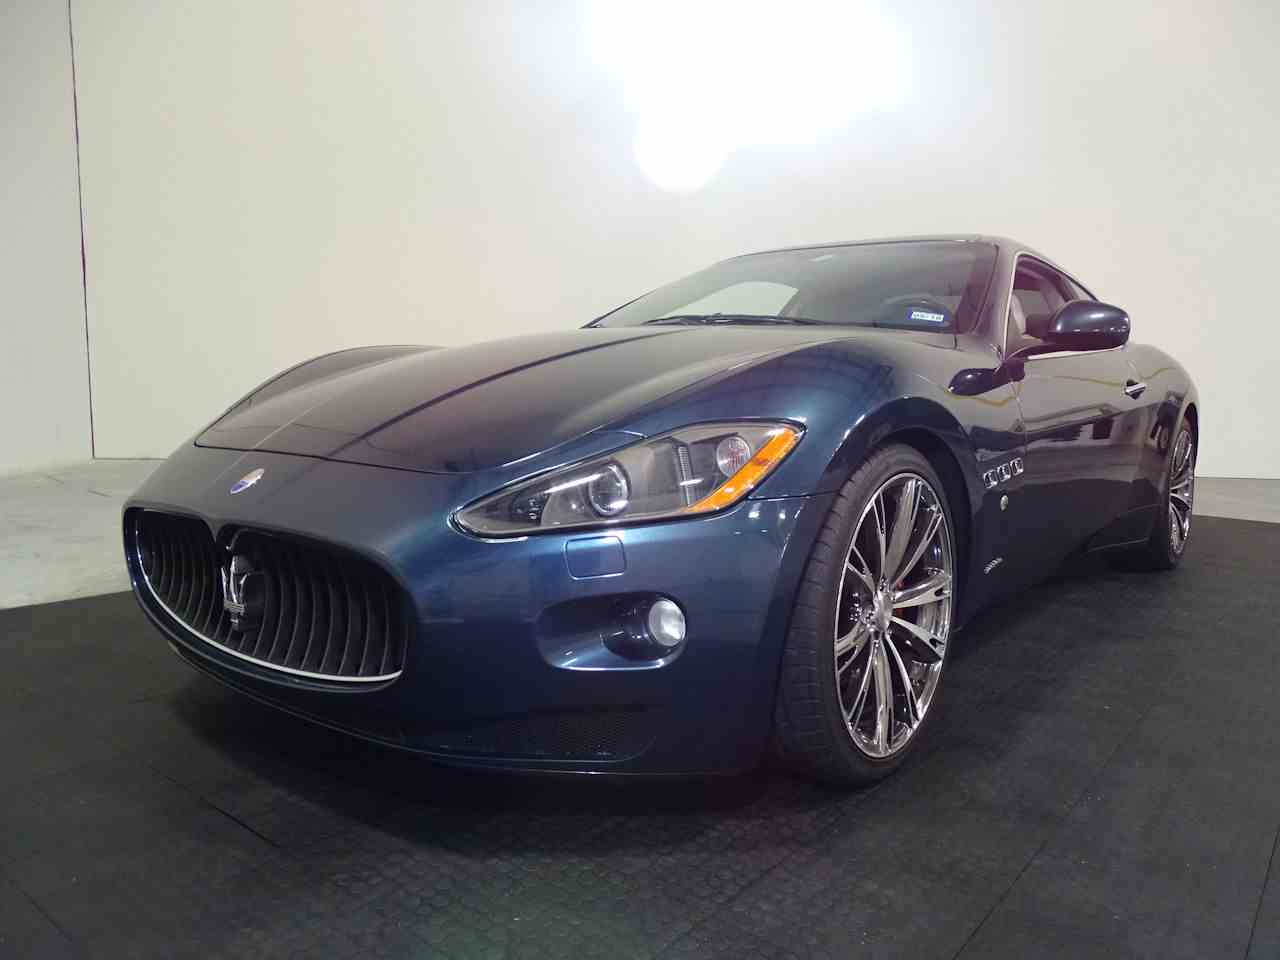 Large Picture of 2008 GranTurismo located in Houston Texas - $42,995.00 - MO4H